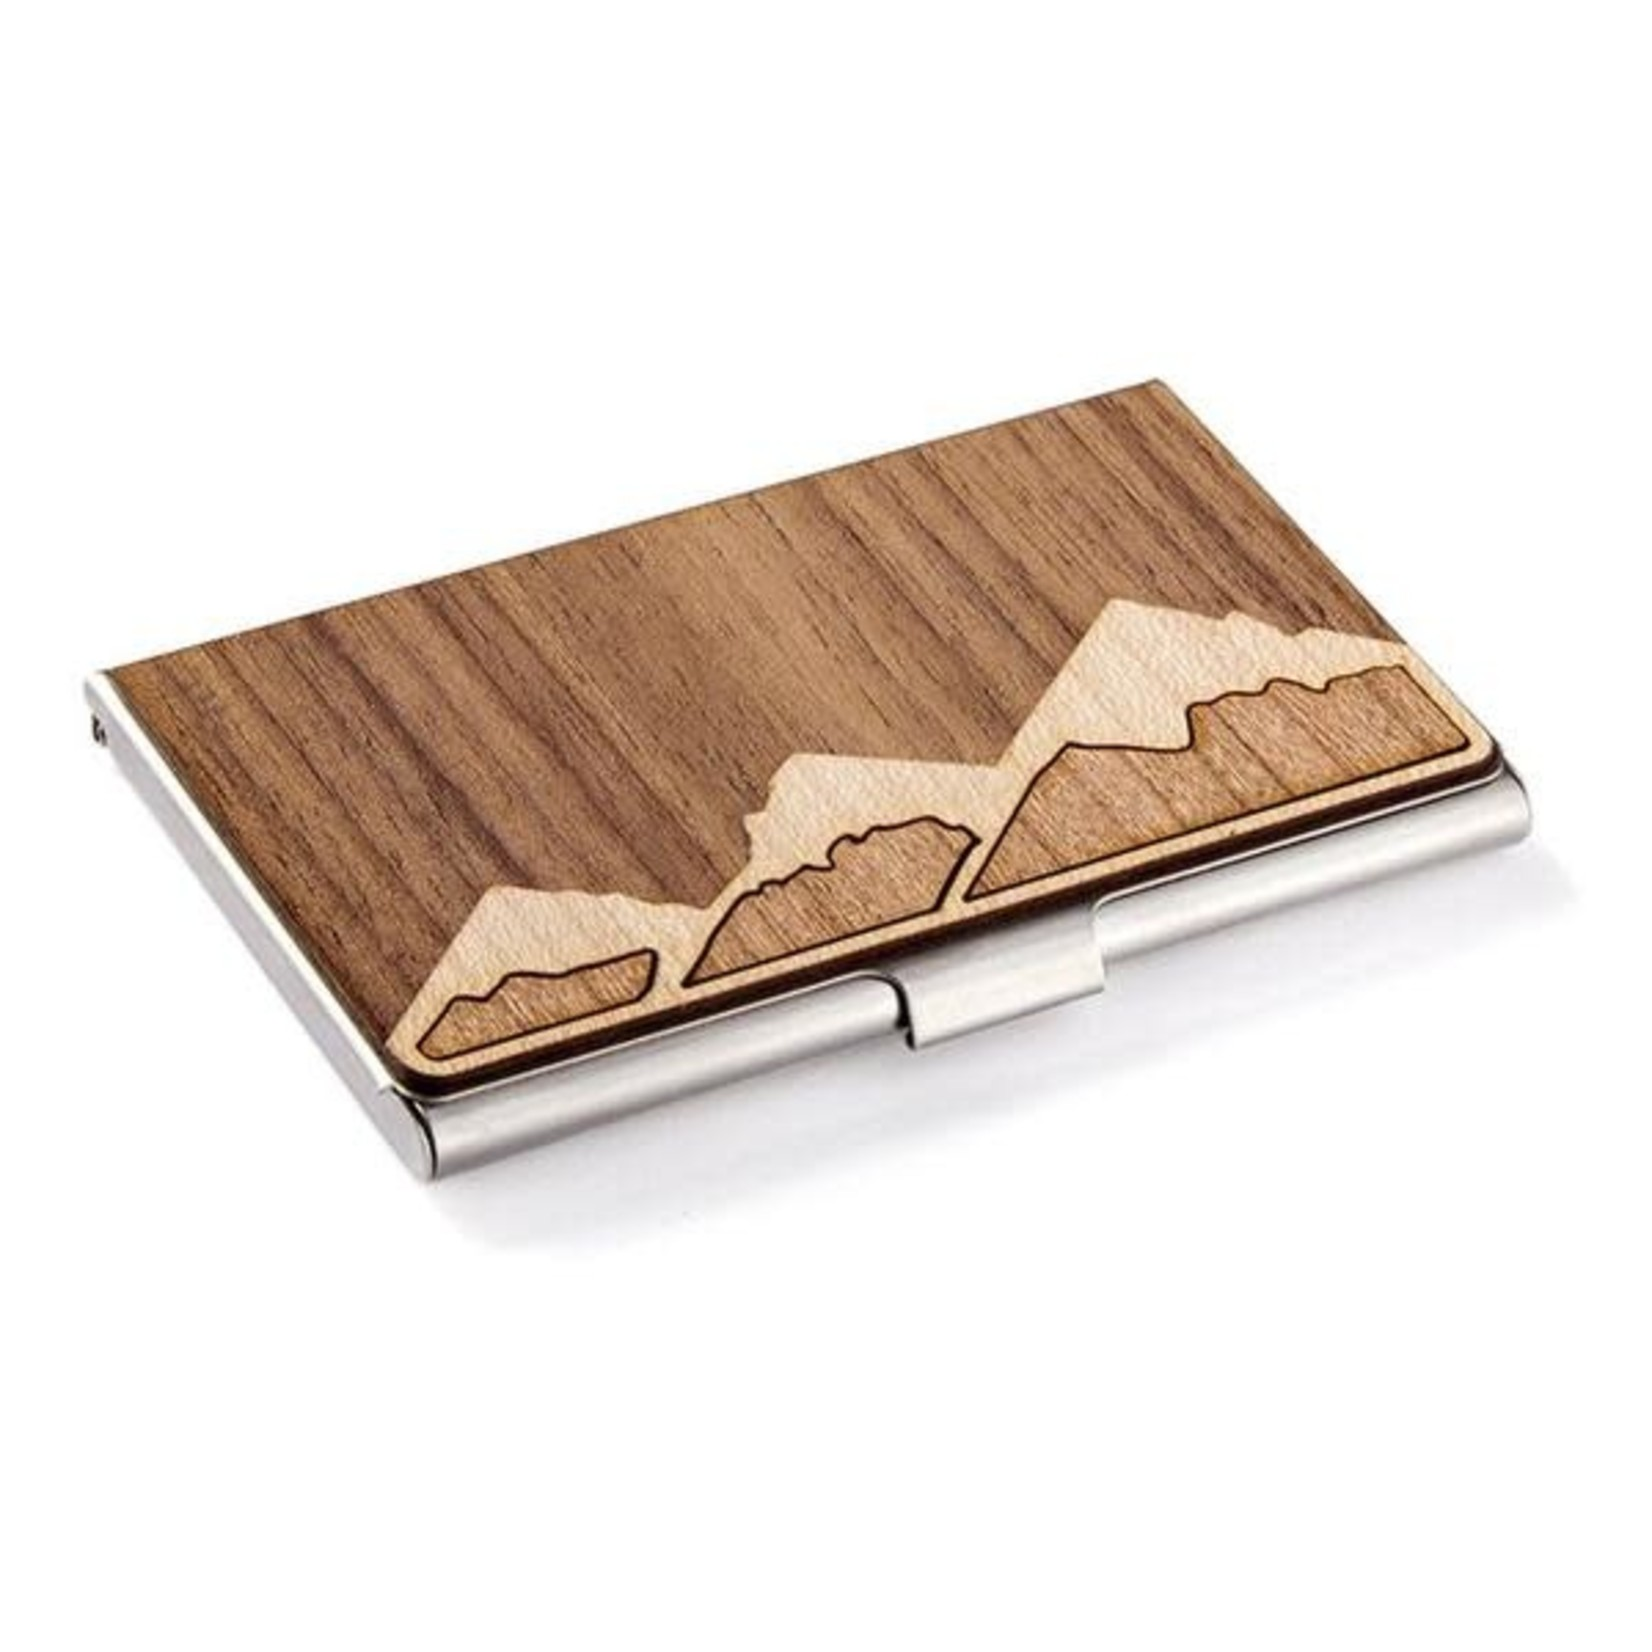 CARD CASE - MOUNTAINS